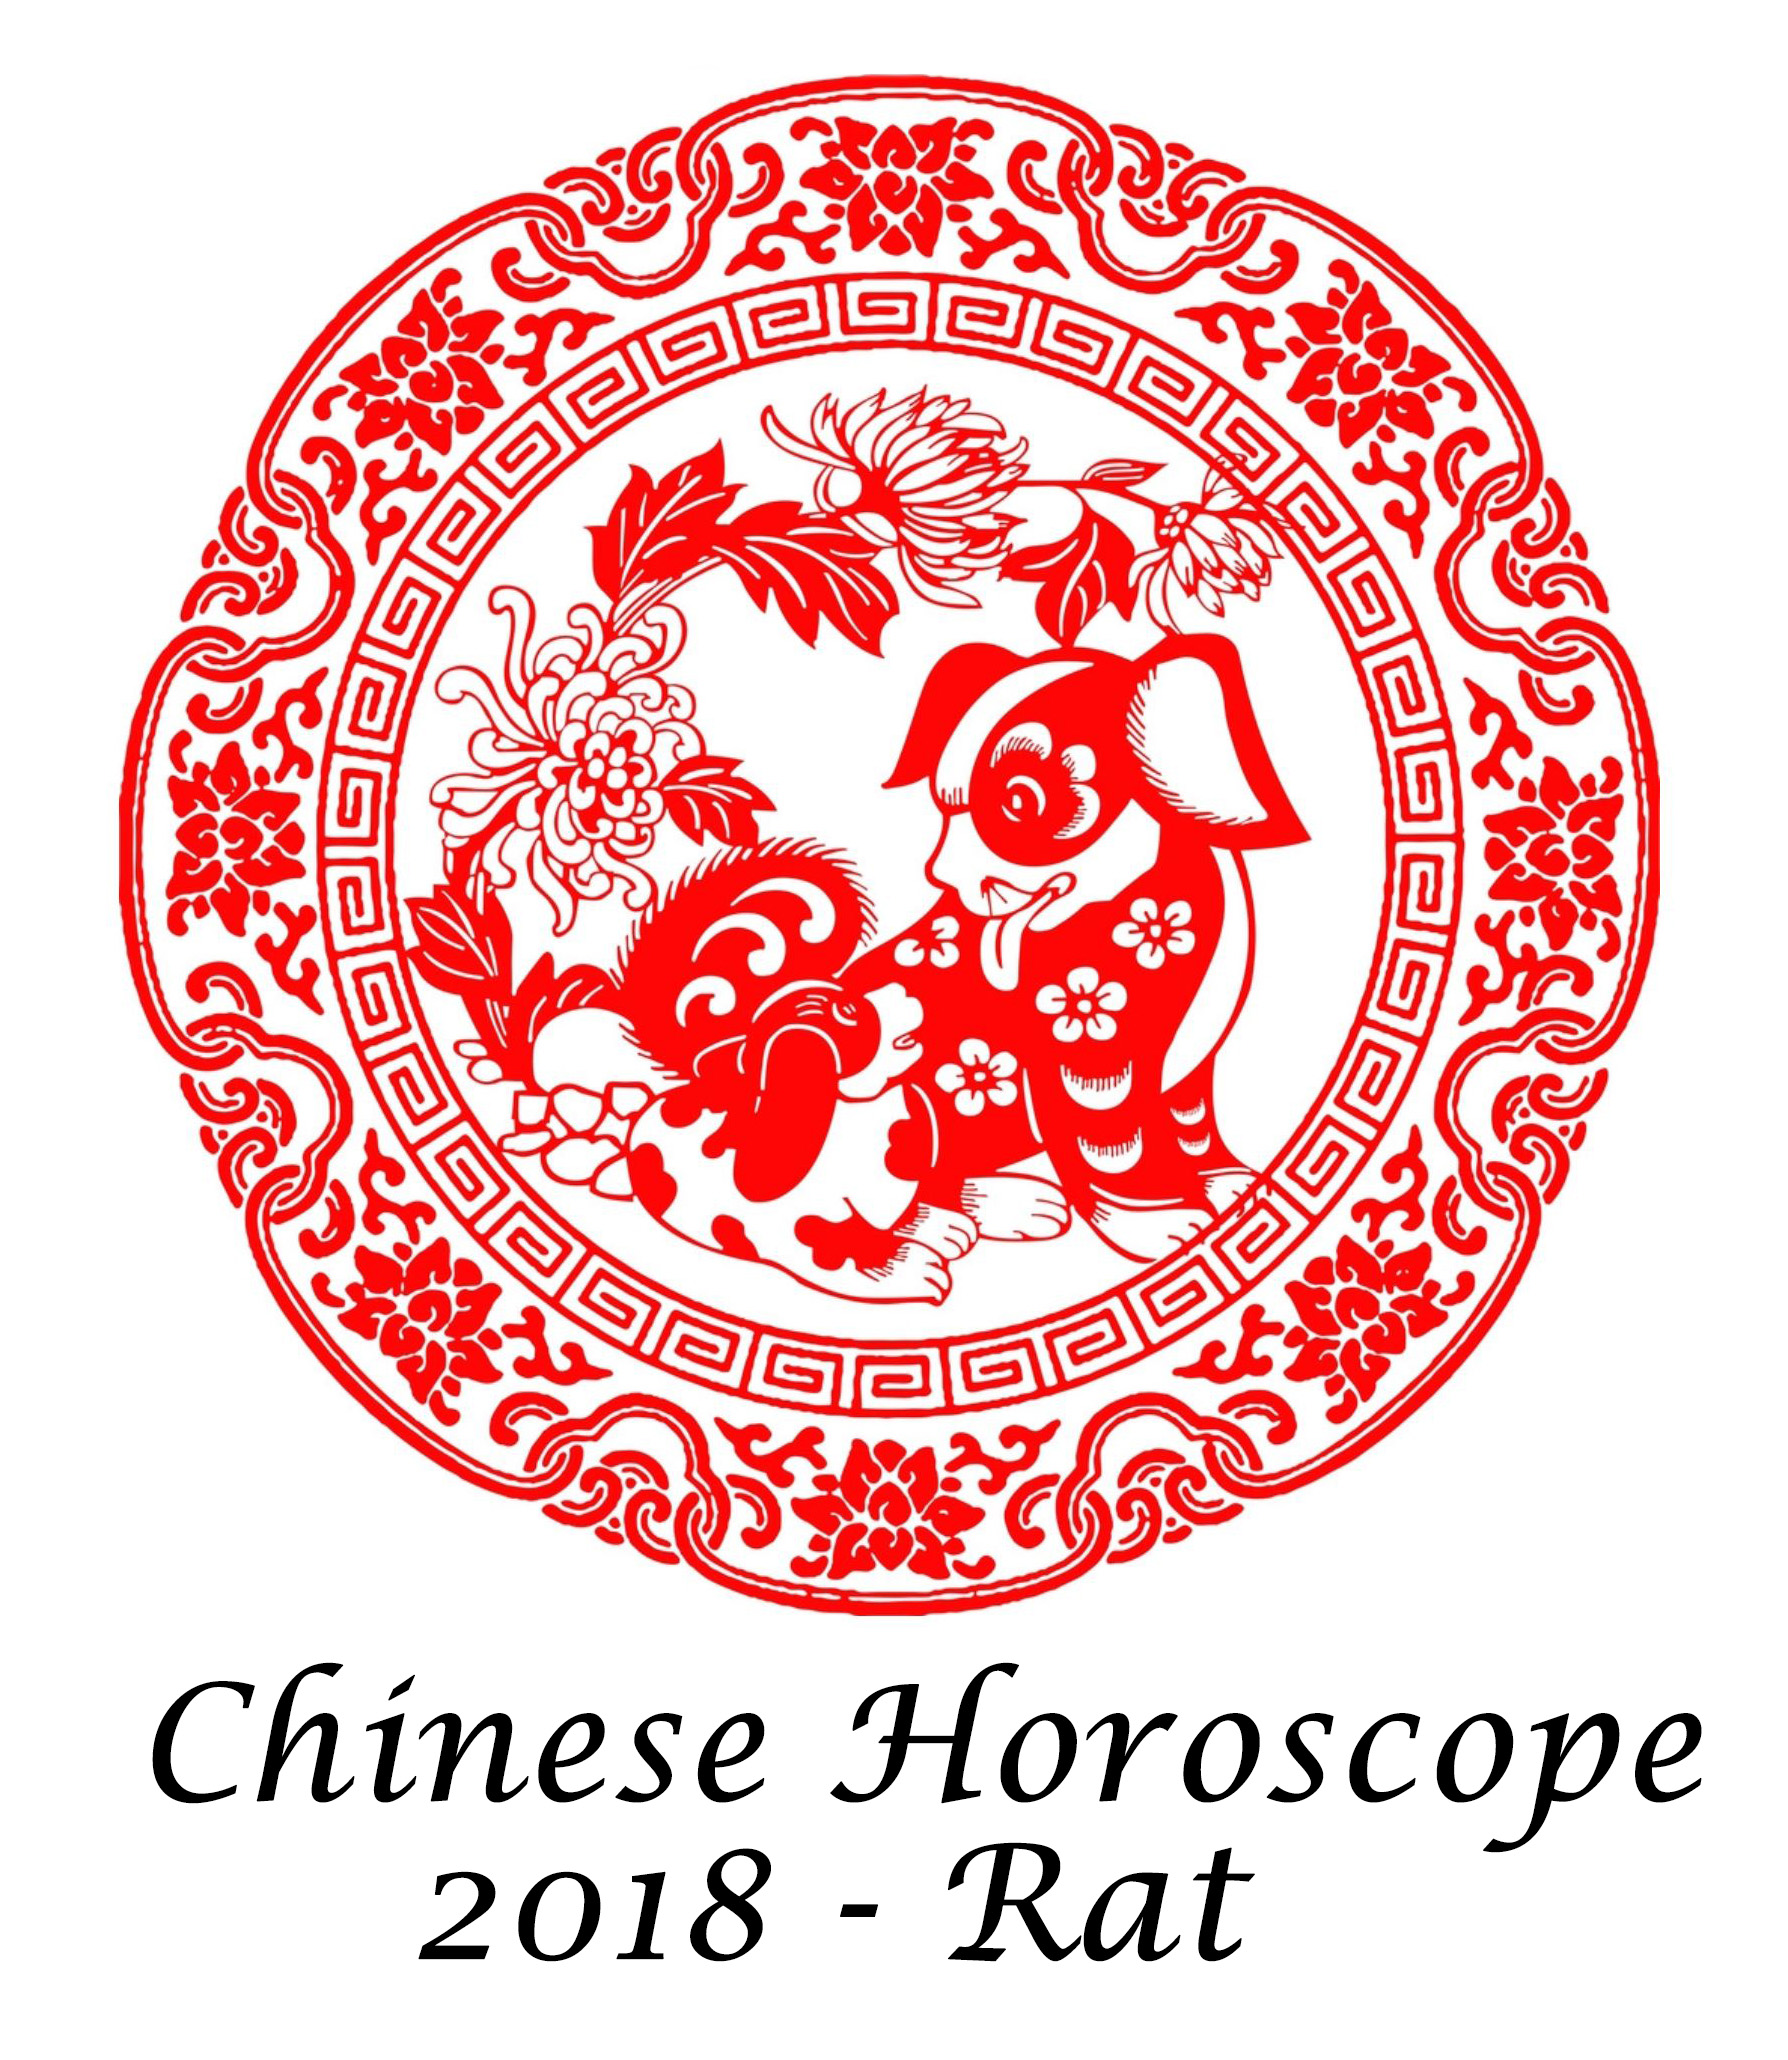 Chinese Horoscope Rat 2018